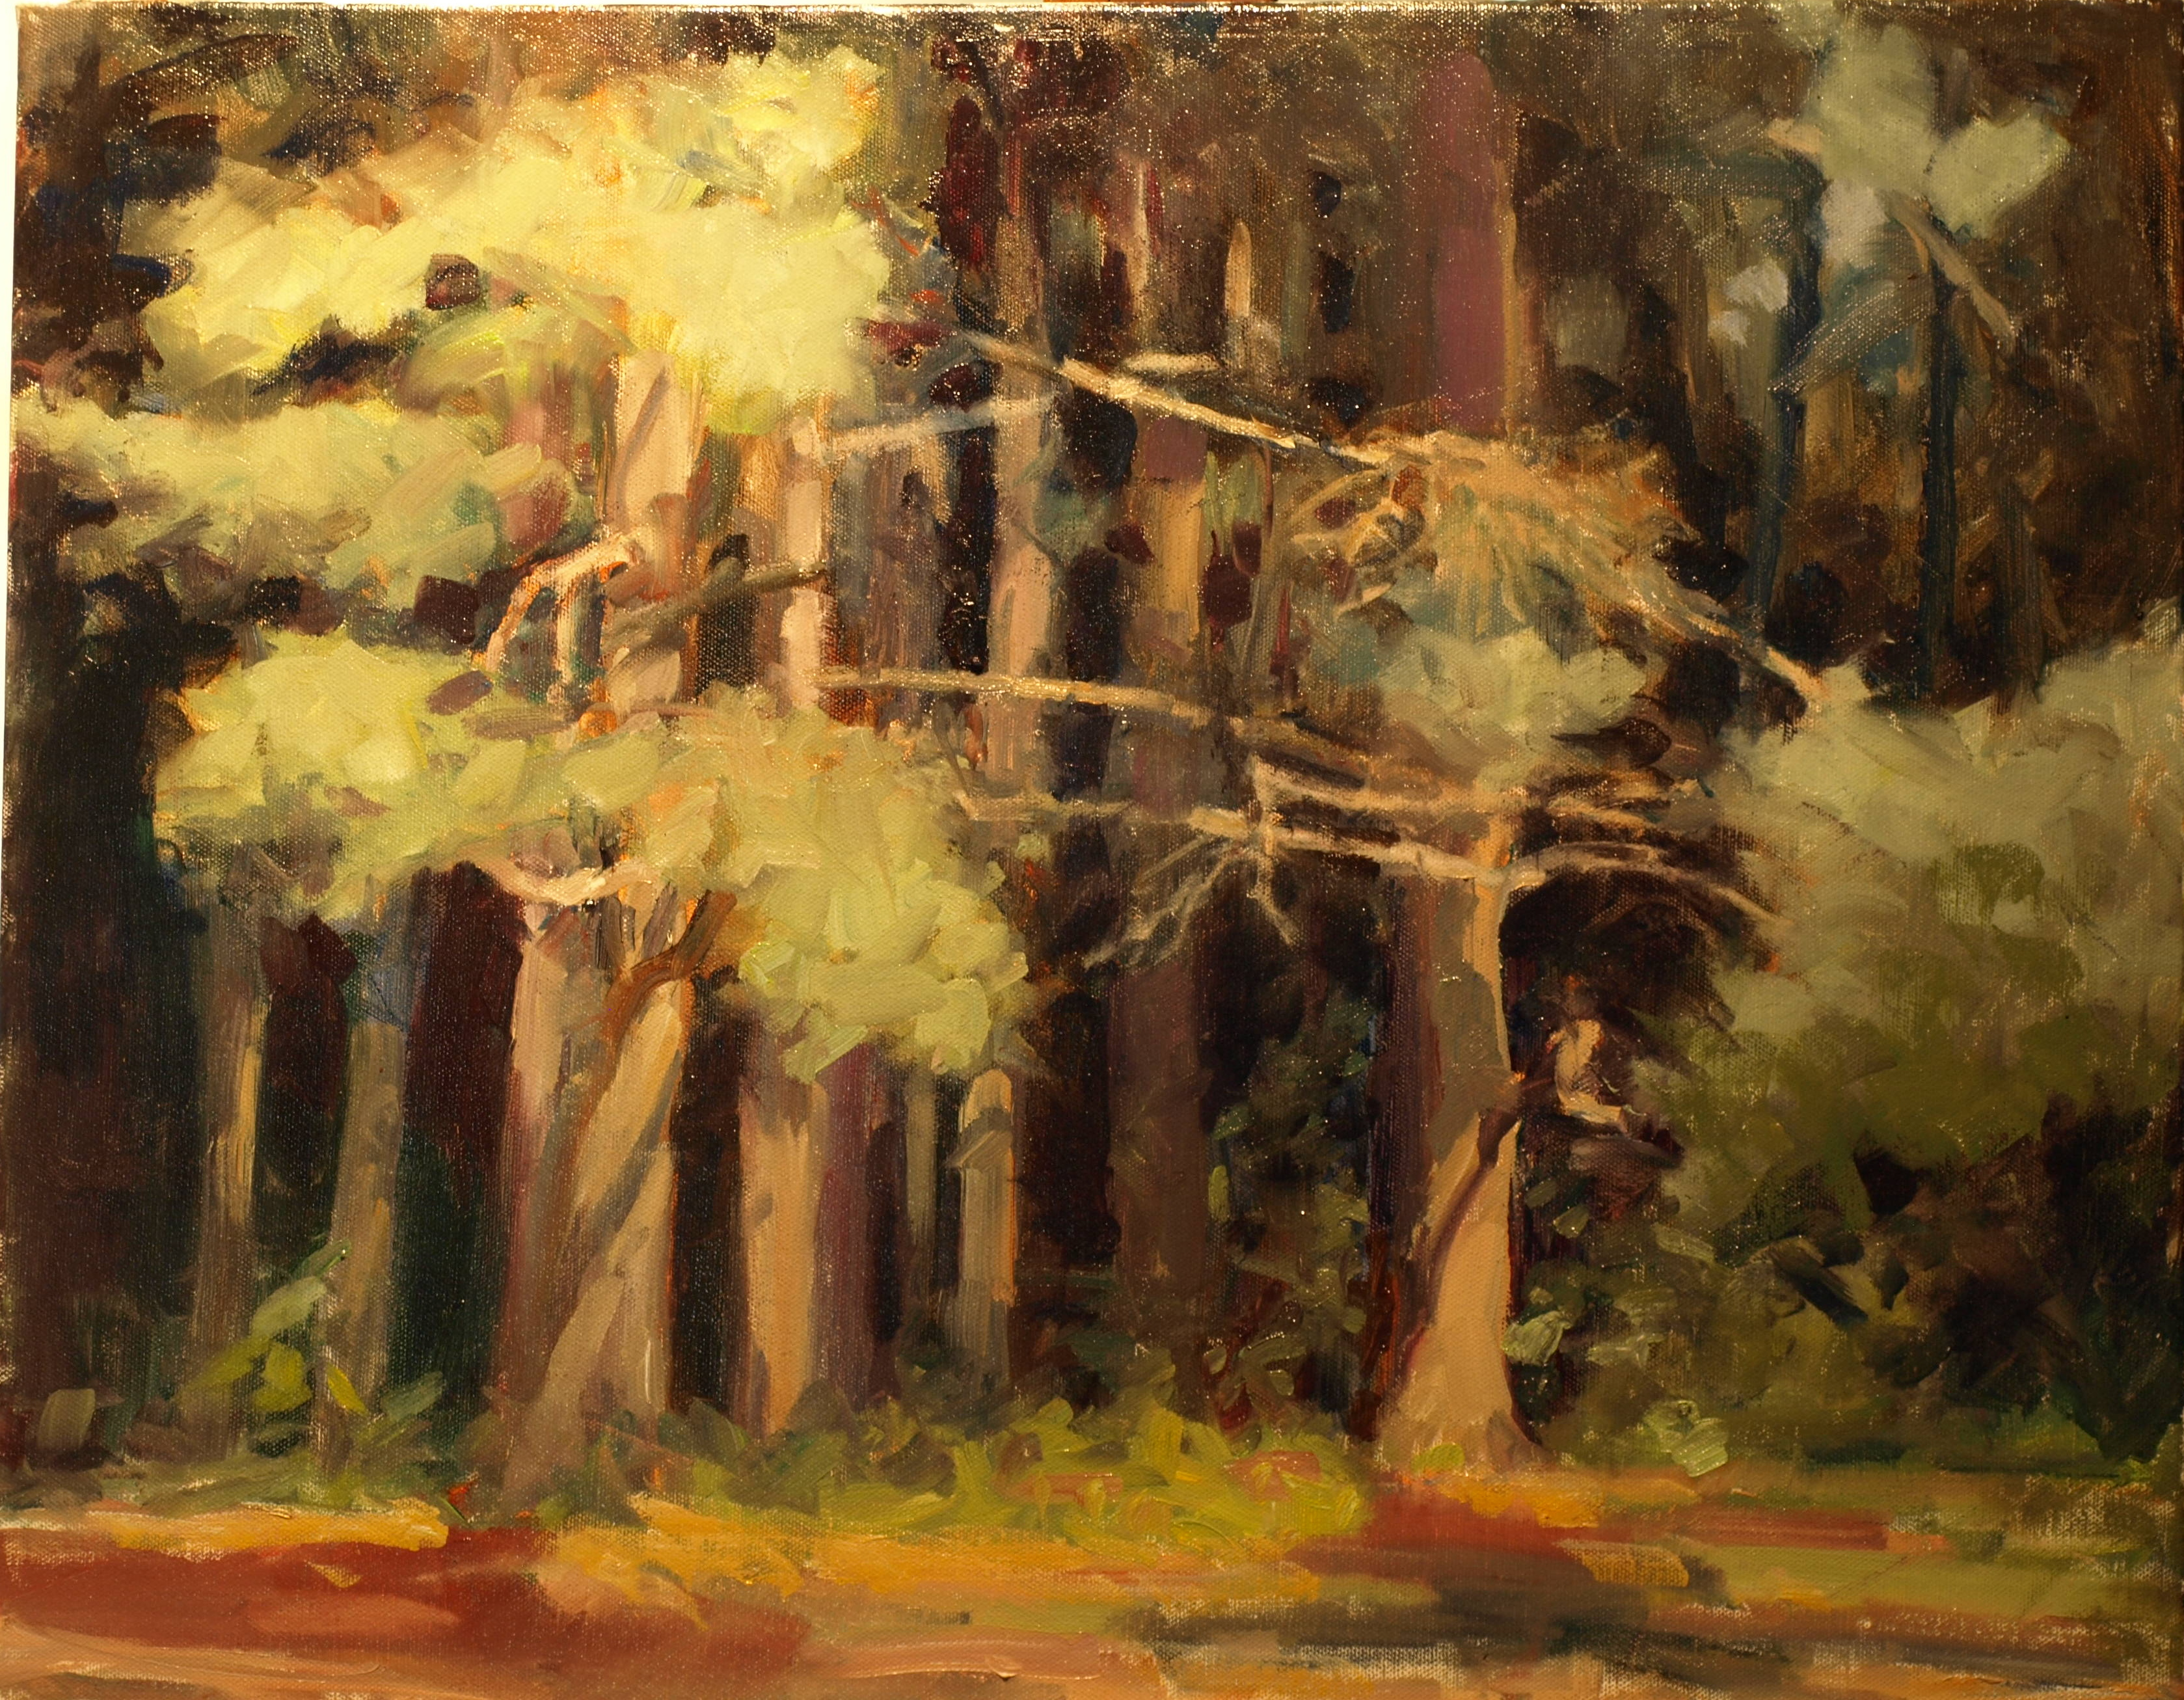 Pine Woods, Oil on Canvas, 20 x 24 Inches, by Susan Grisell, $750